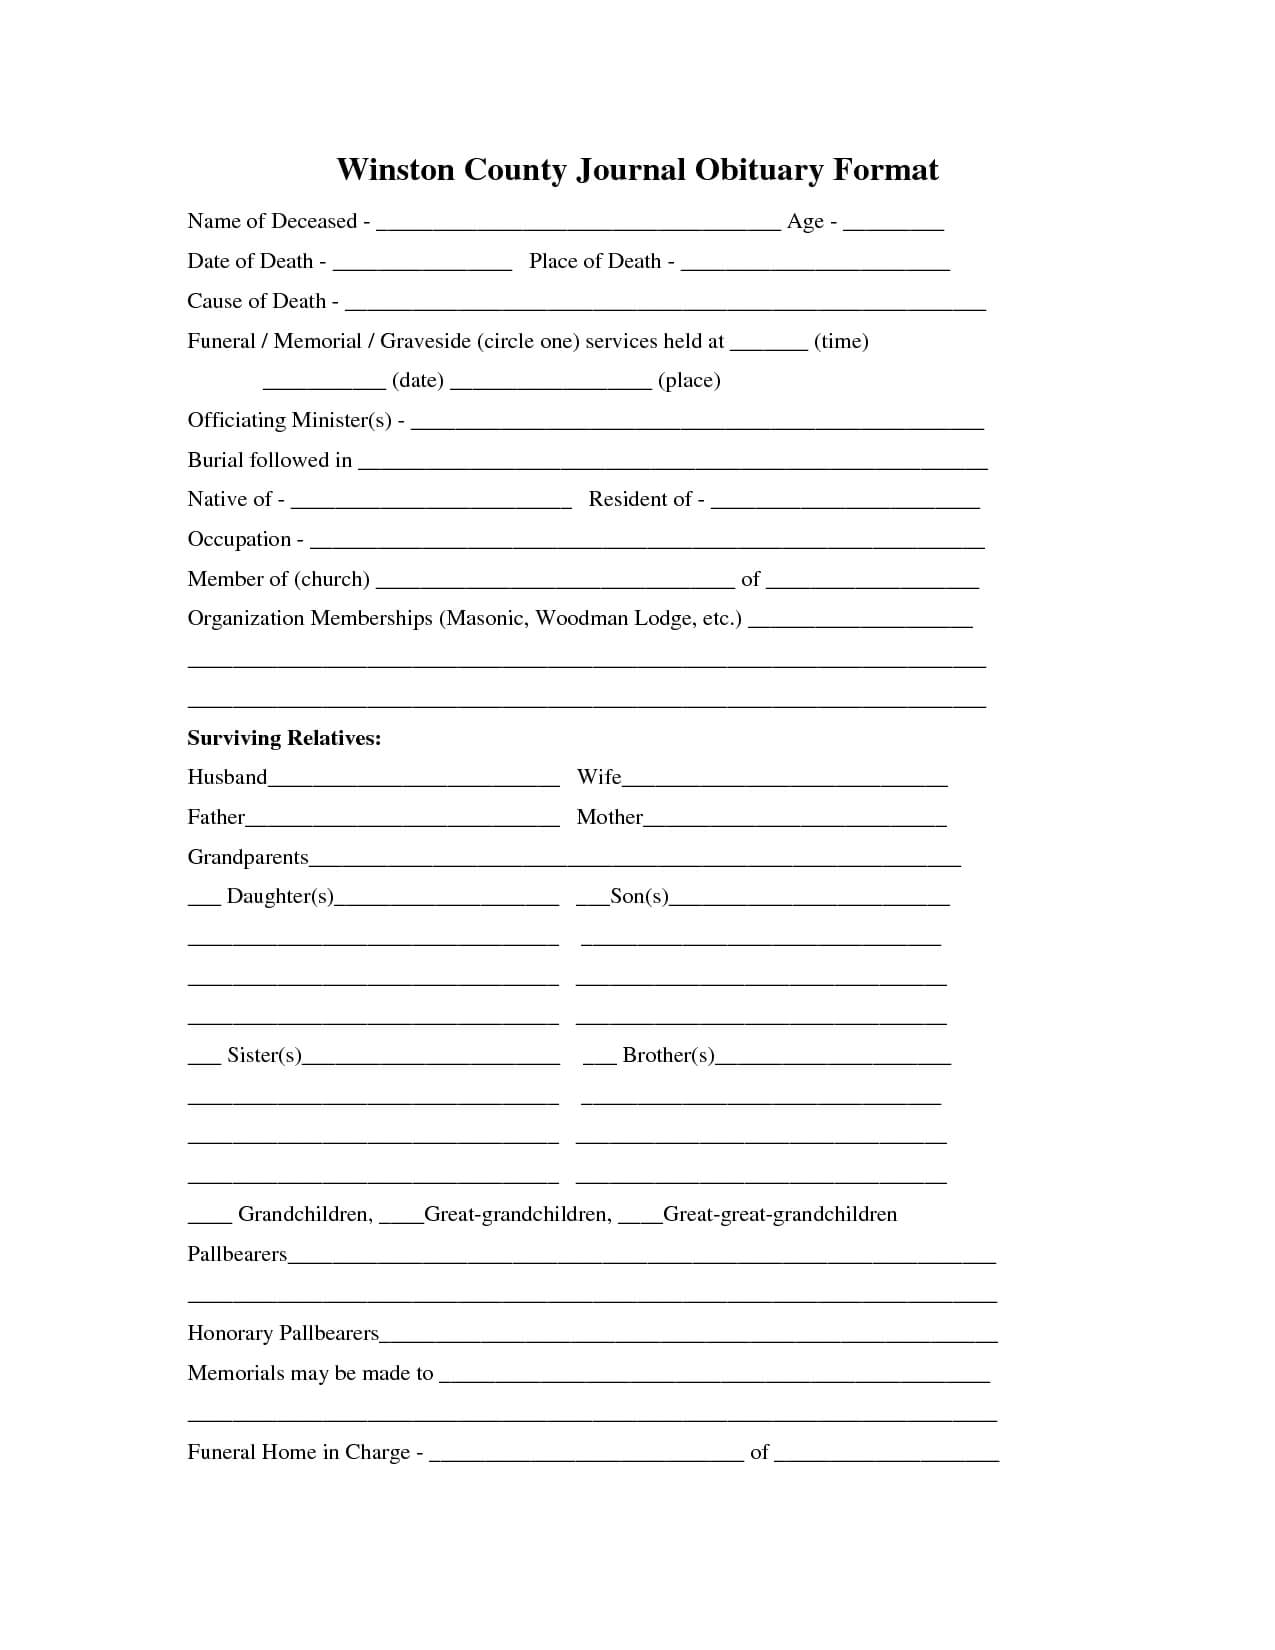 Printable Obituary Template   Fill In The Blank Obituary For Fill In The Blank Obituary Template